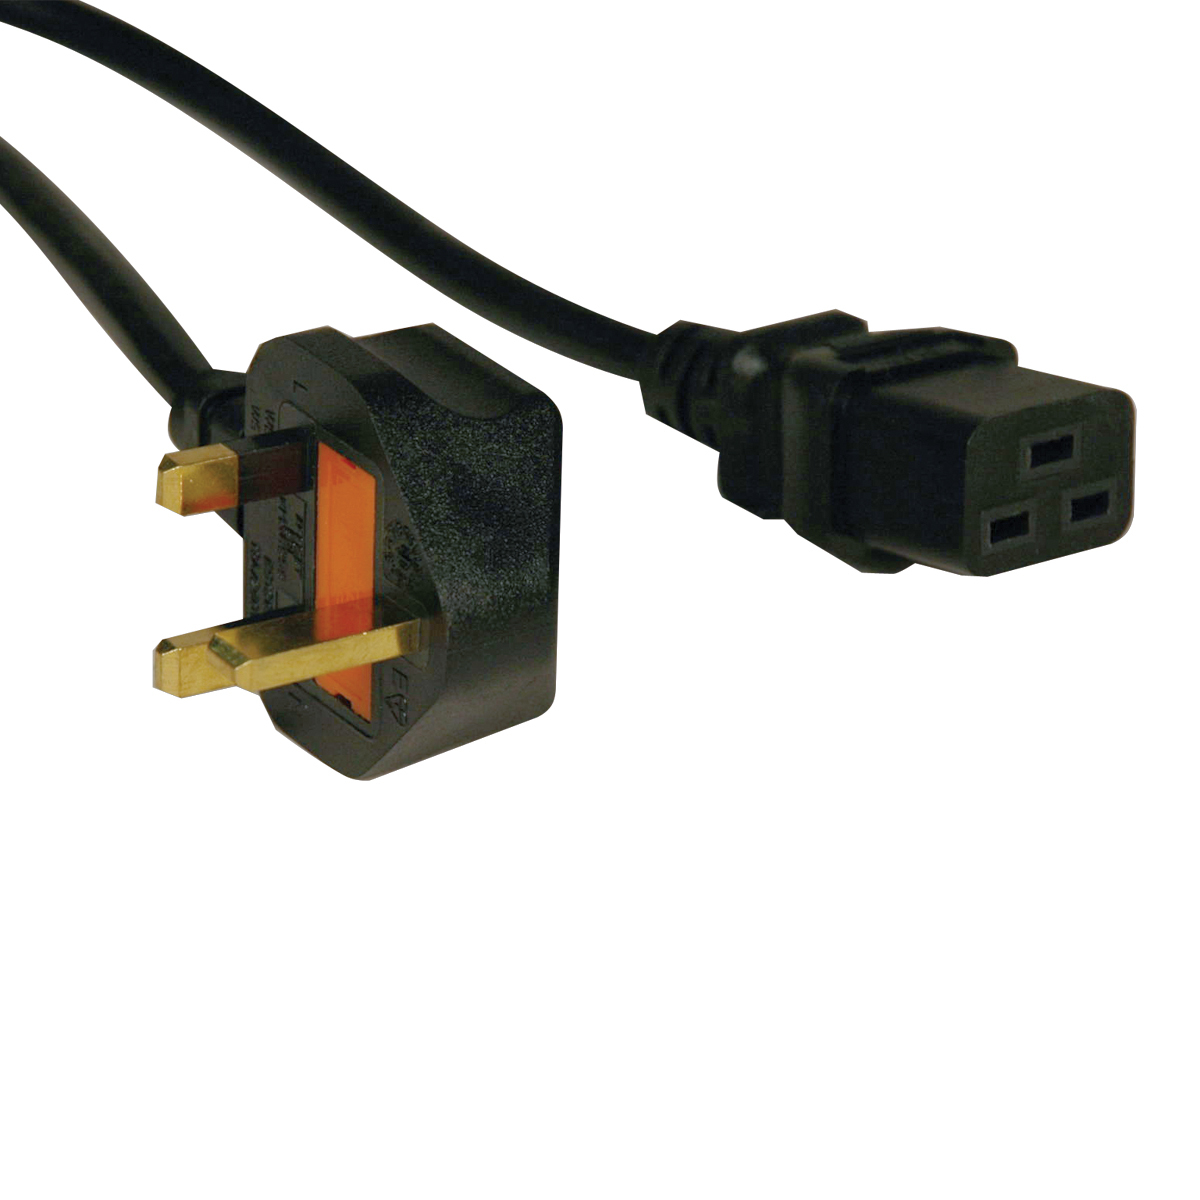 TRIPP LITE STANDARD UK POWER CORD LEAD CABLE, 13A (IEC-320-C19 TO BS-1363 PLUG), 2.43 M